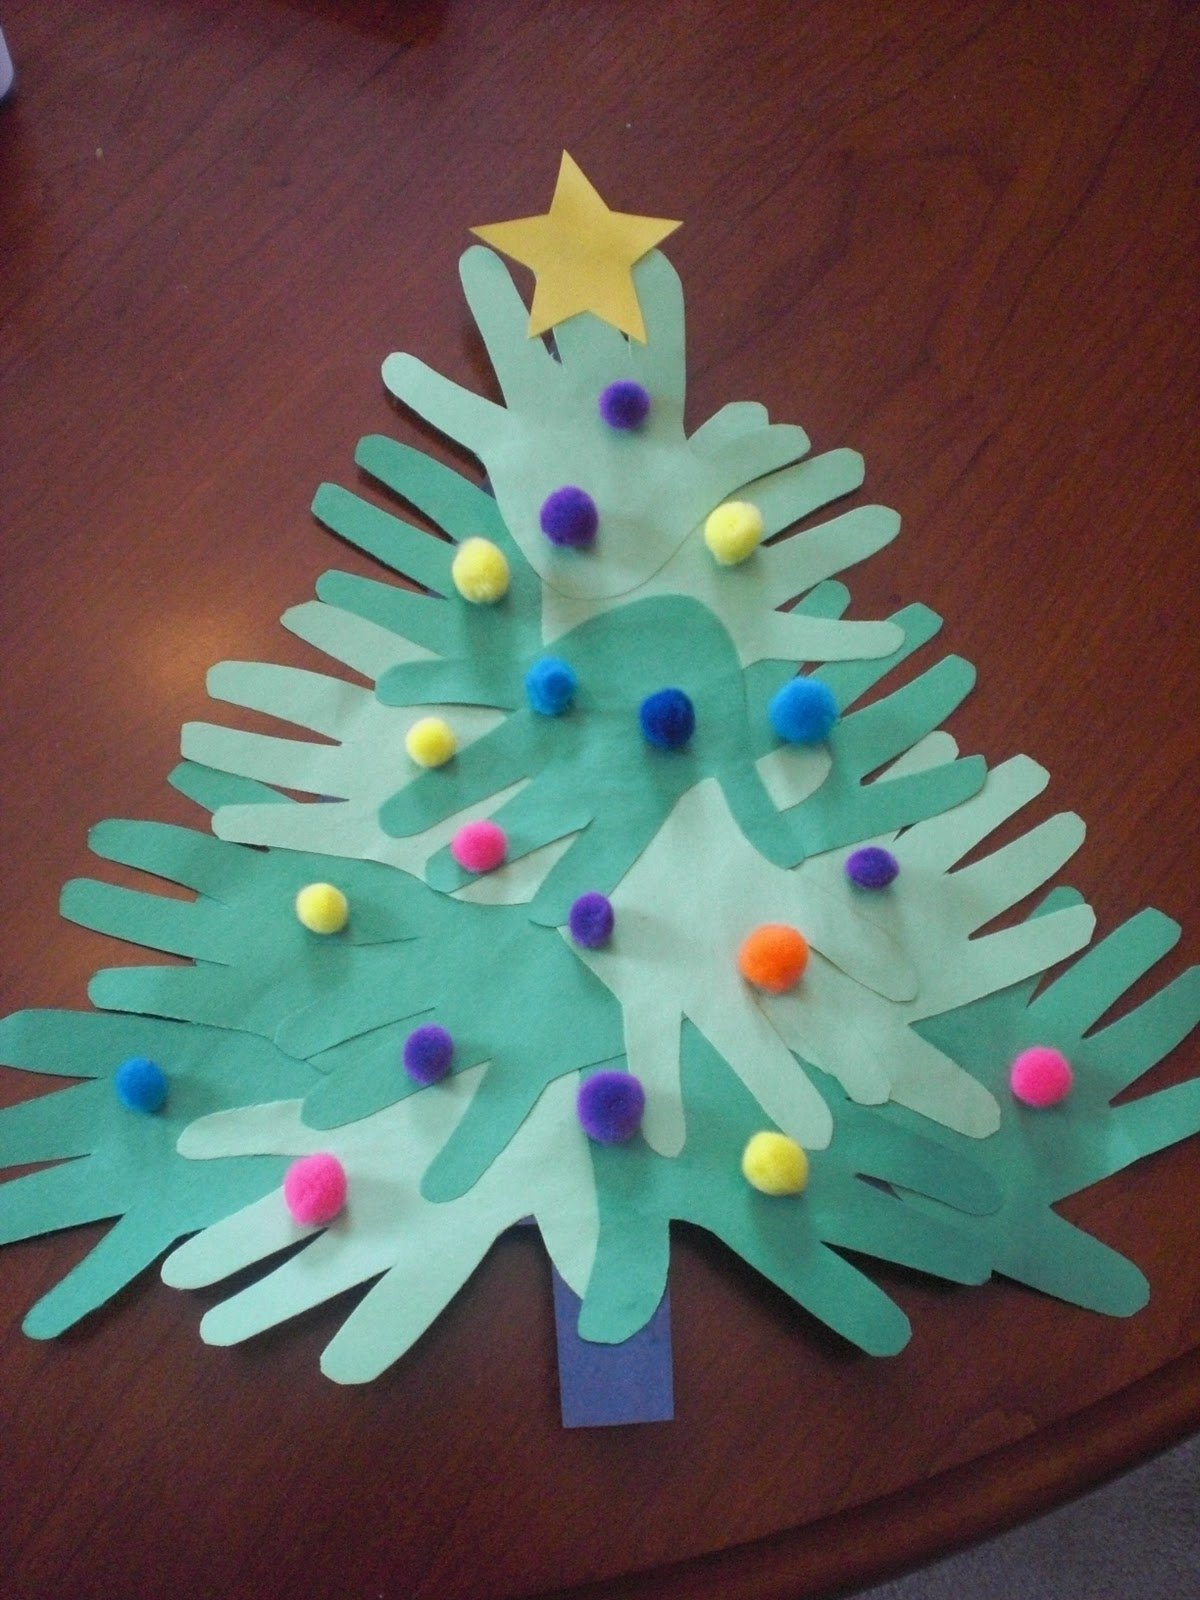 10 Attractive Easy Christmas Craft Ideas For Kids craft ideas for christmas moment kids finelakewoodplumbing x3snzejx 3 2021